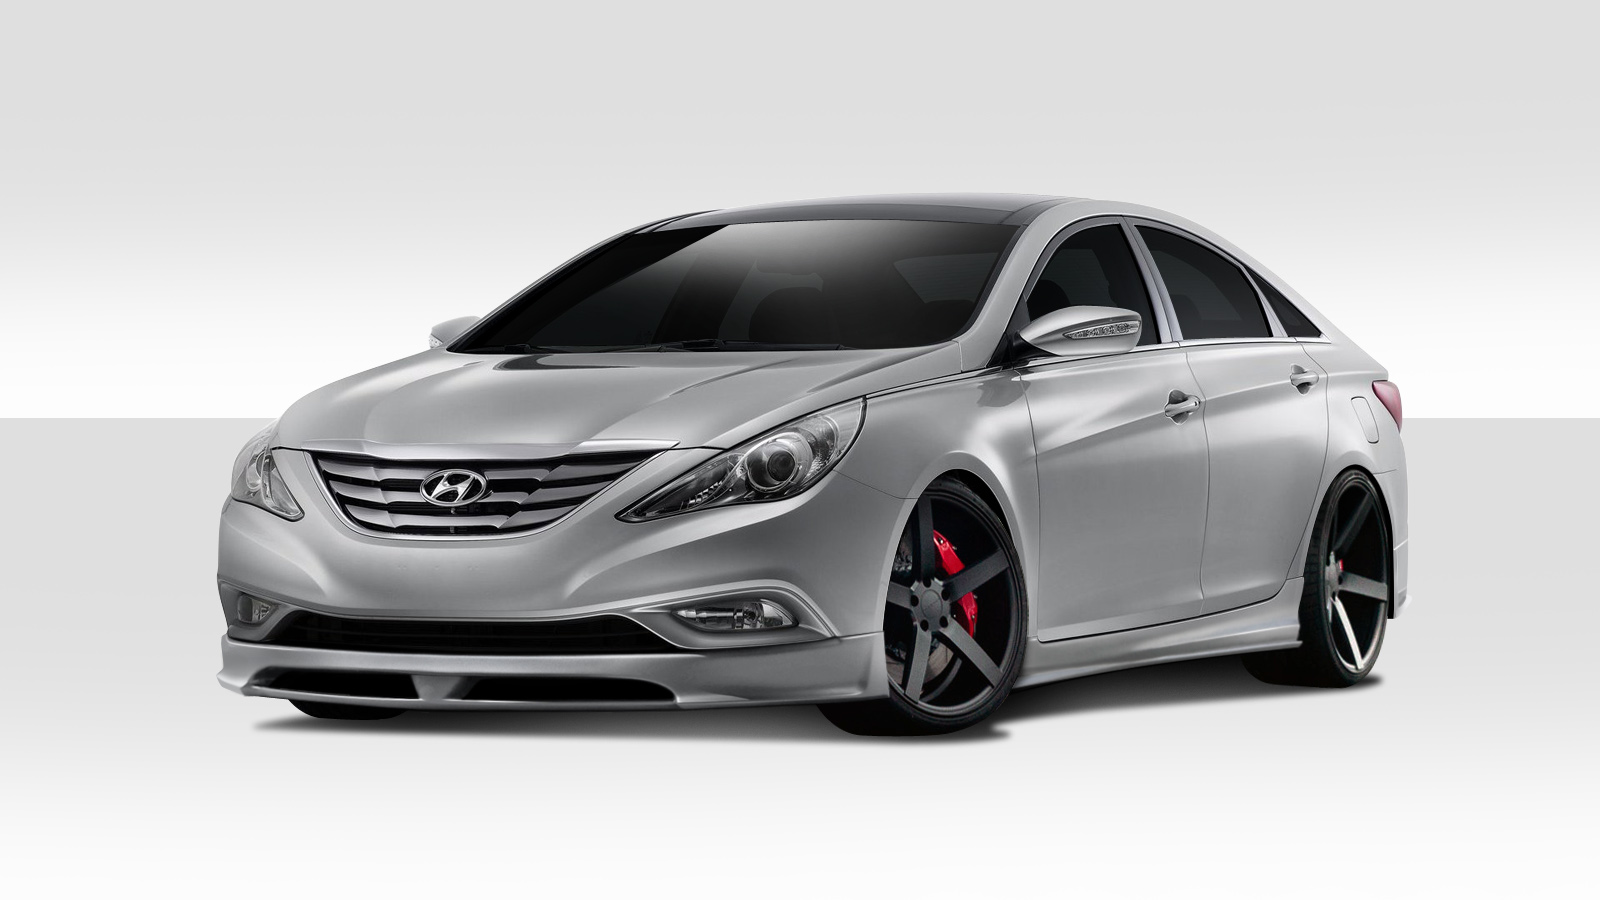 2011-2013 Hyundai Sonata Body Kit